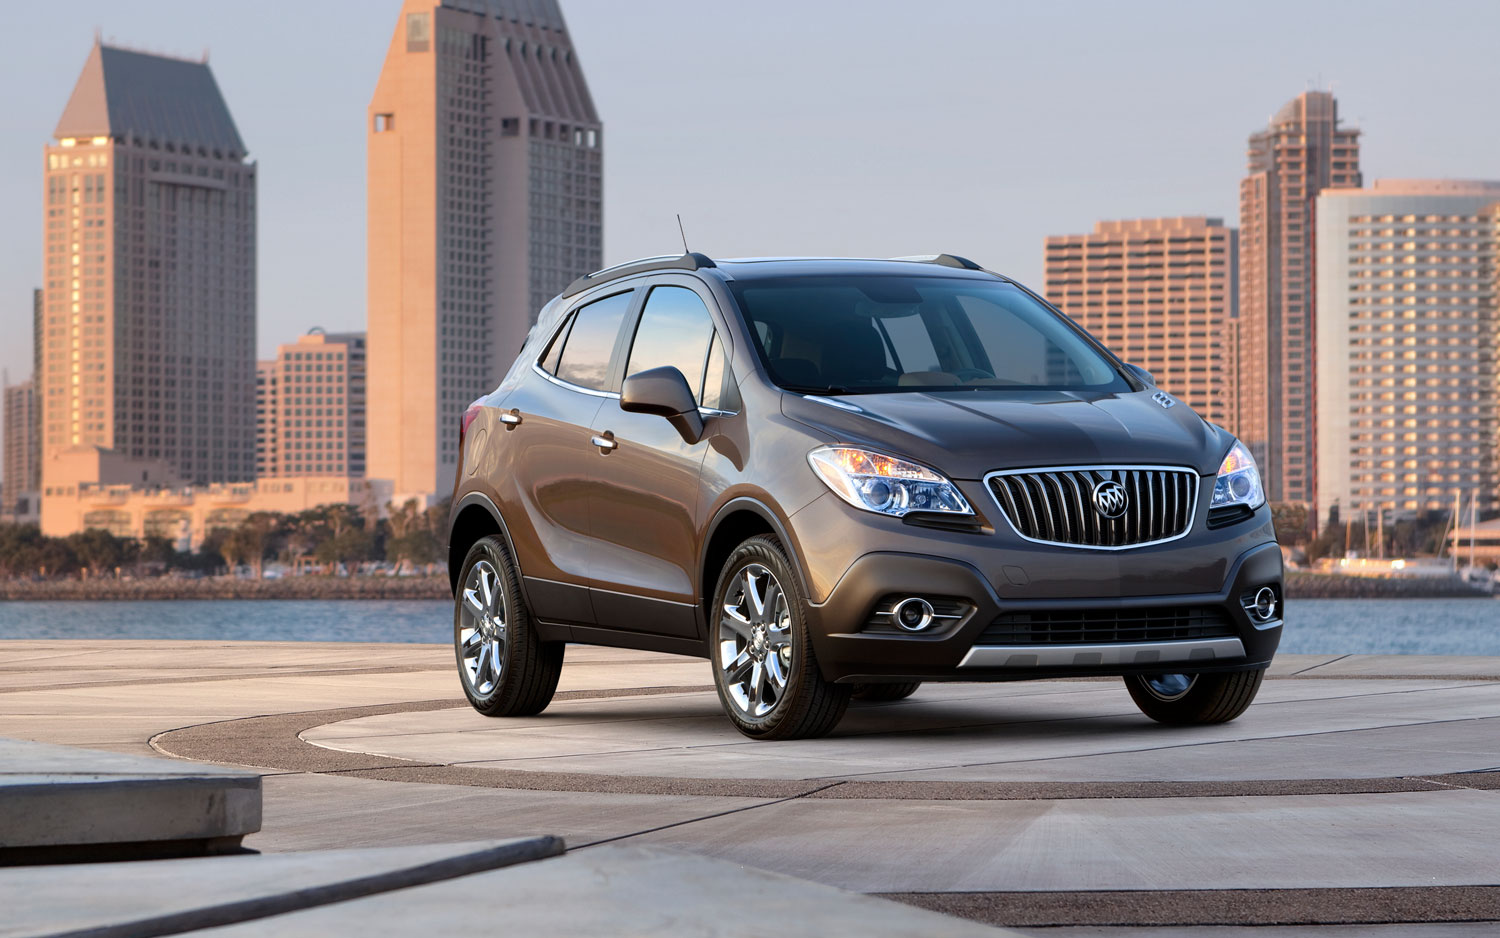 2013 Buick Encore Front Three Quarter View1